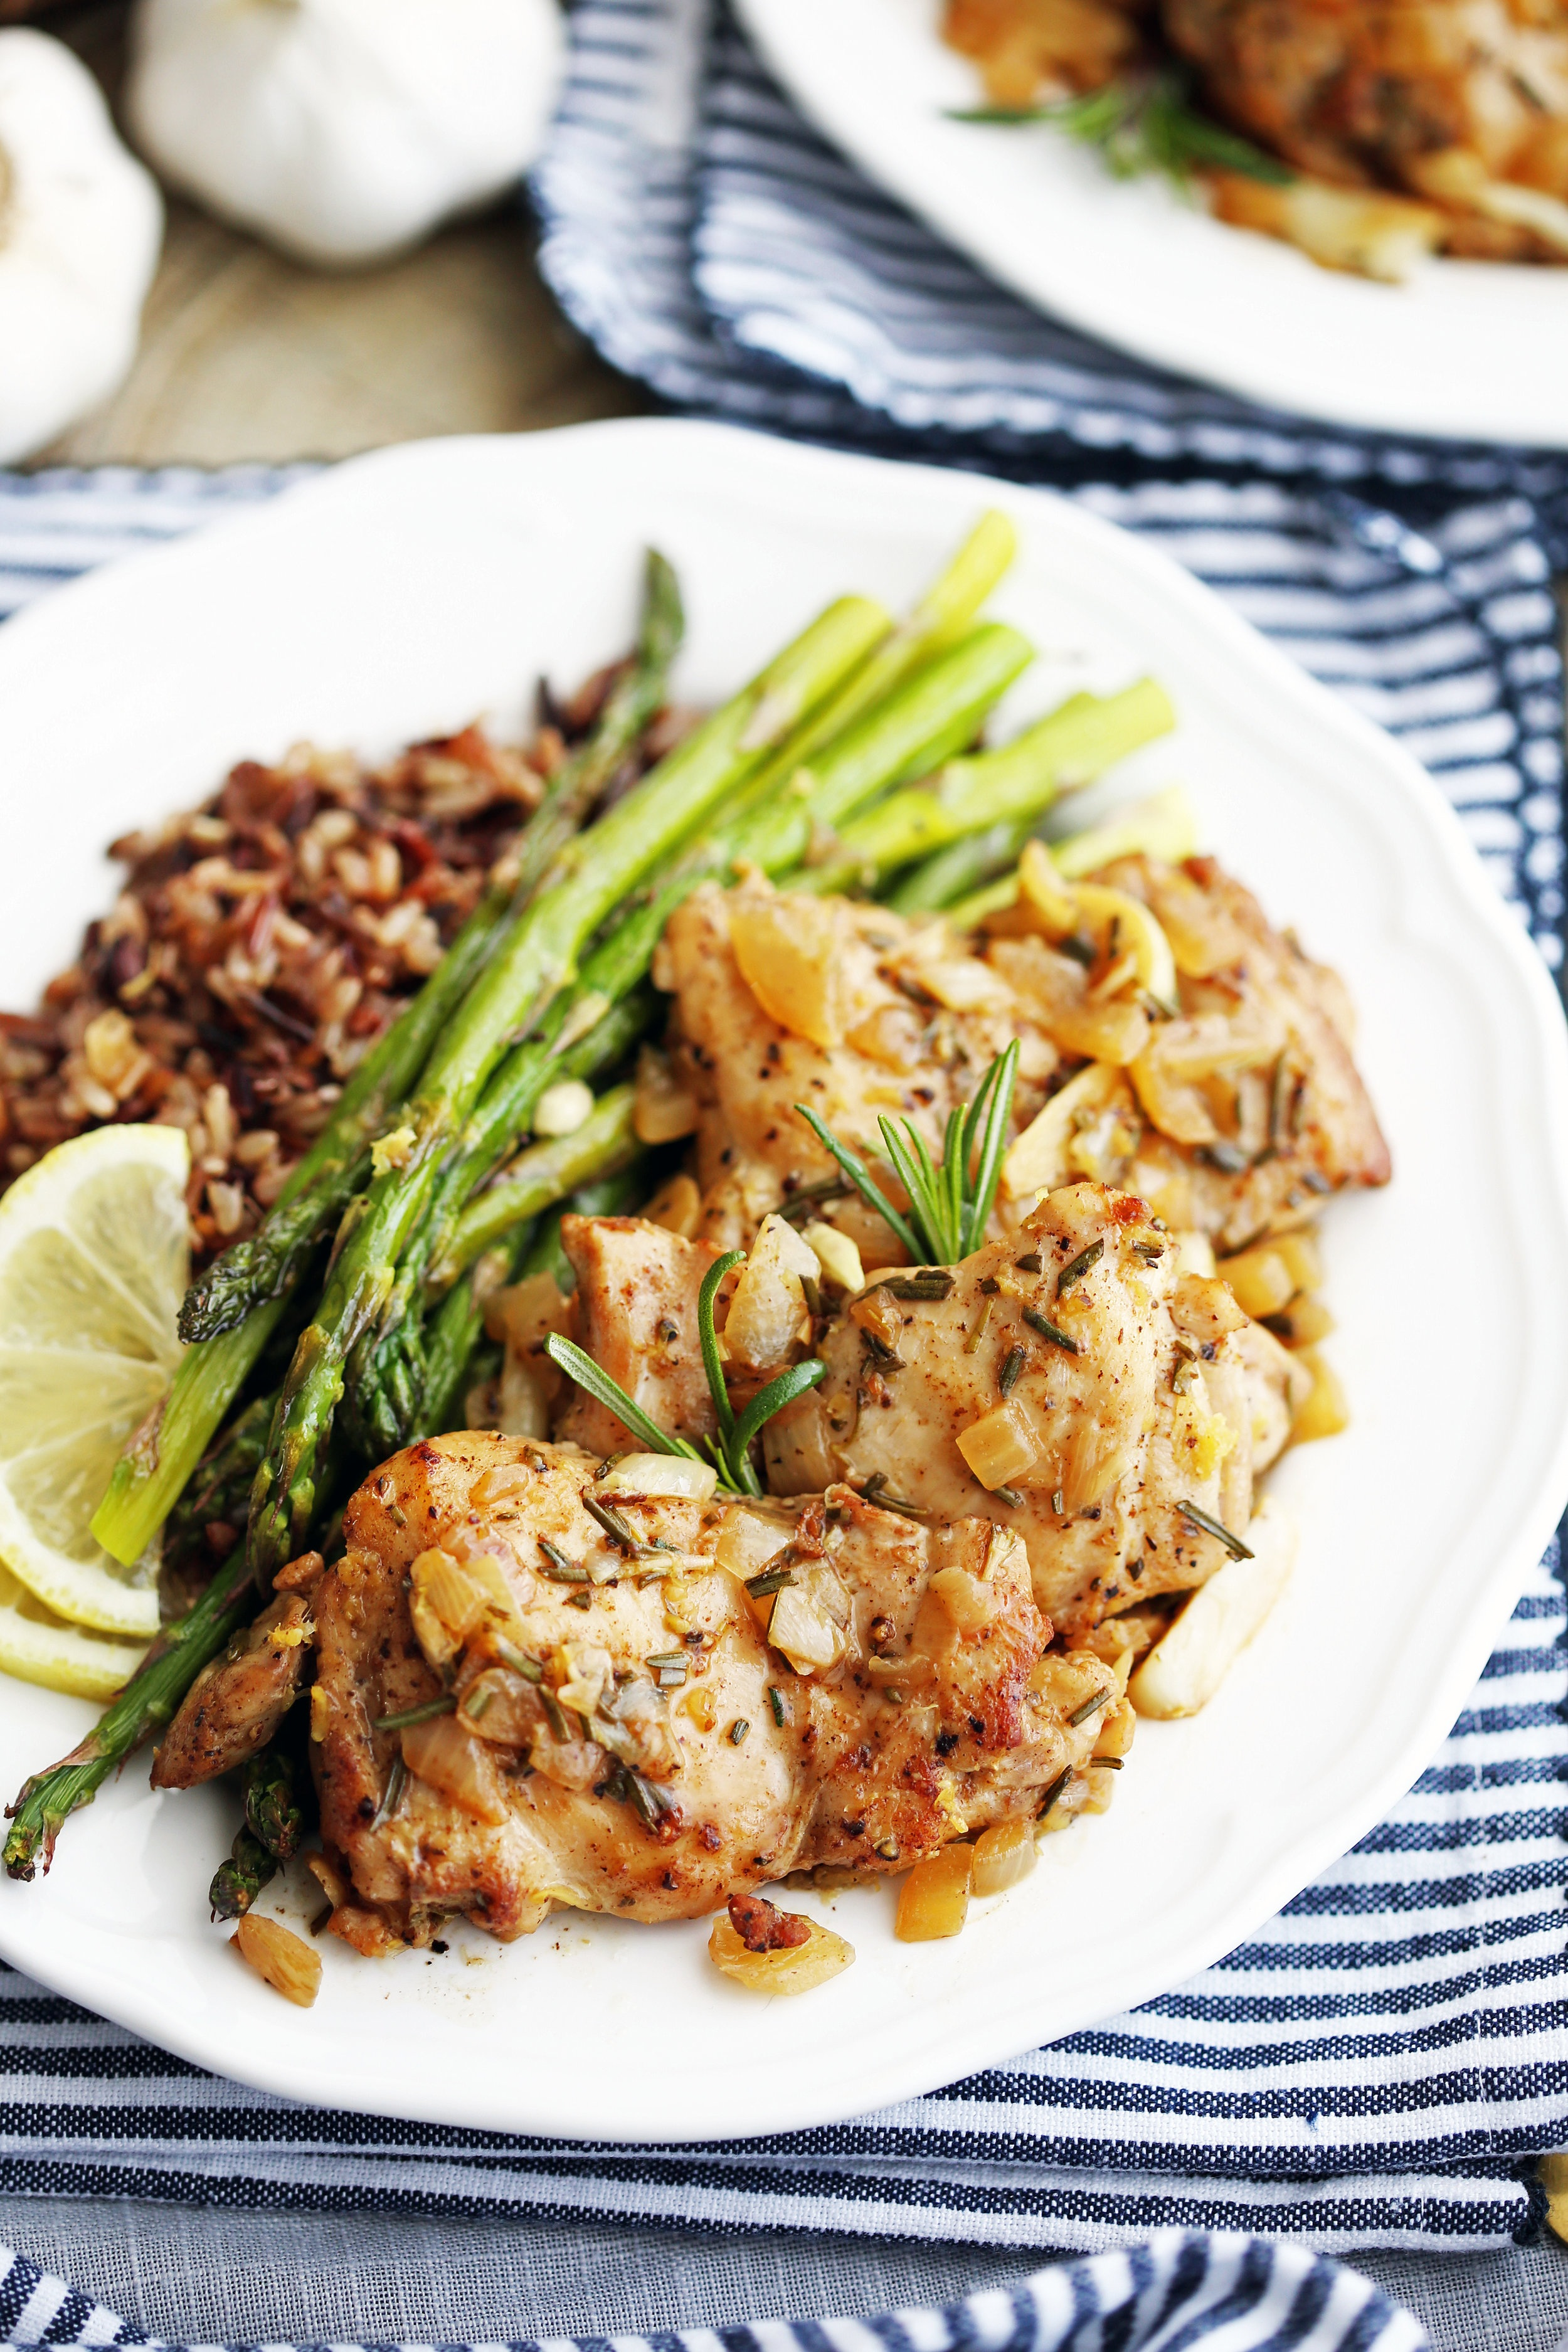 Three rosemary garlic chicken thighs with roasted asparagus and wild rice on a white plate.